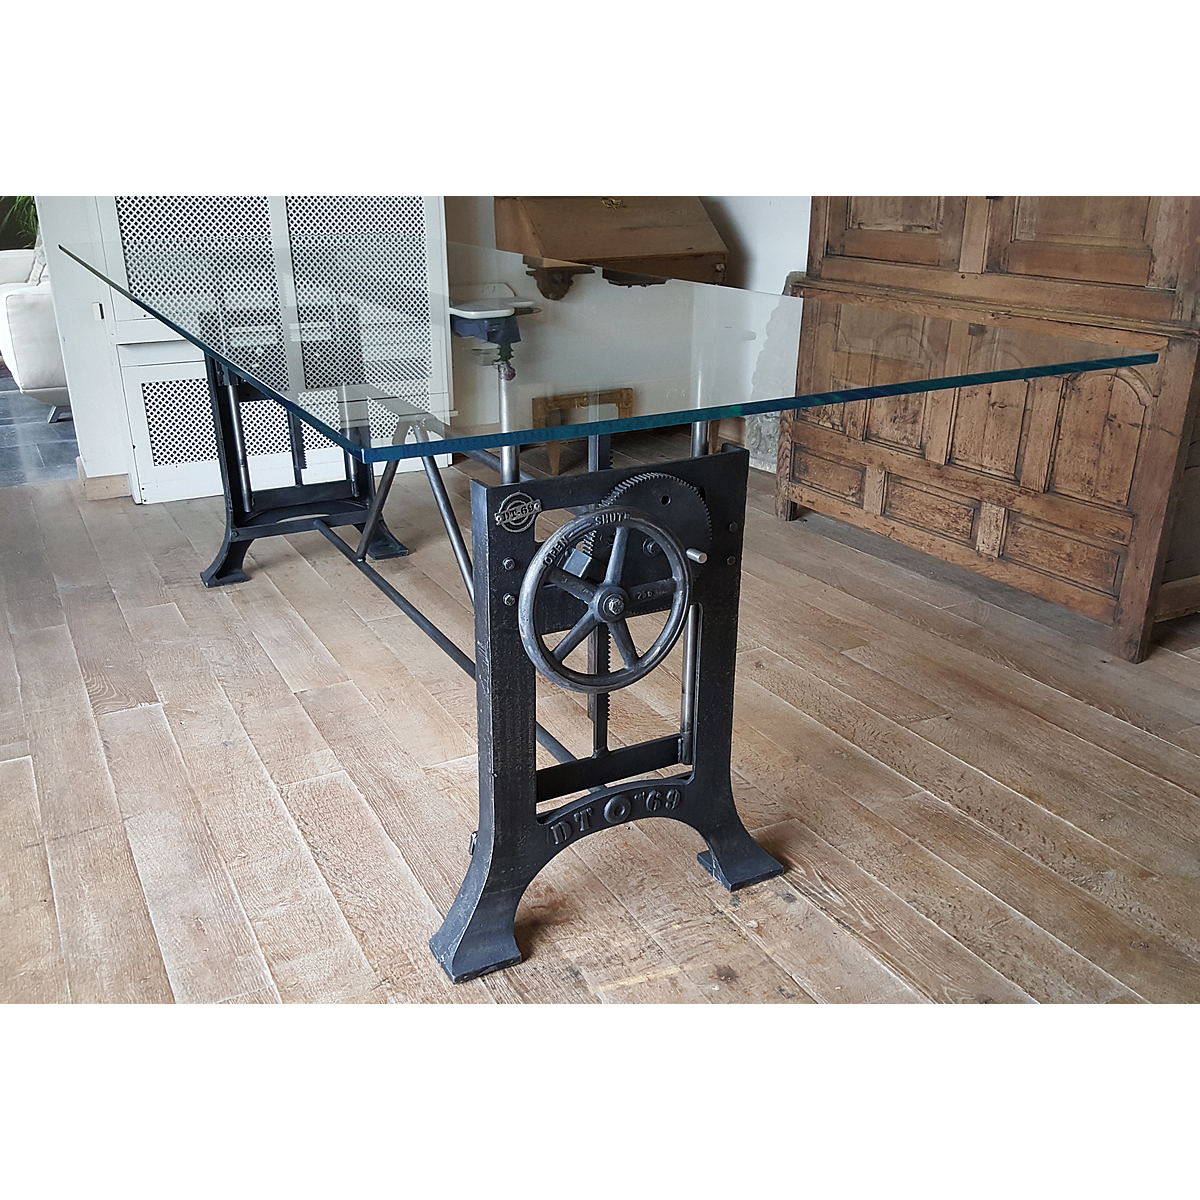 Adjustable height crank table with an extra clear glass top DT12